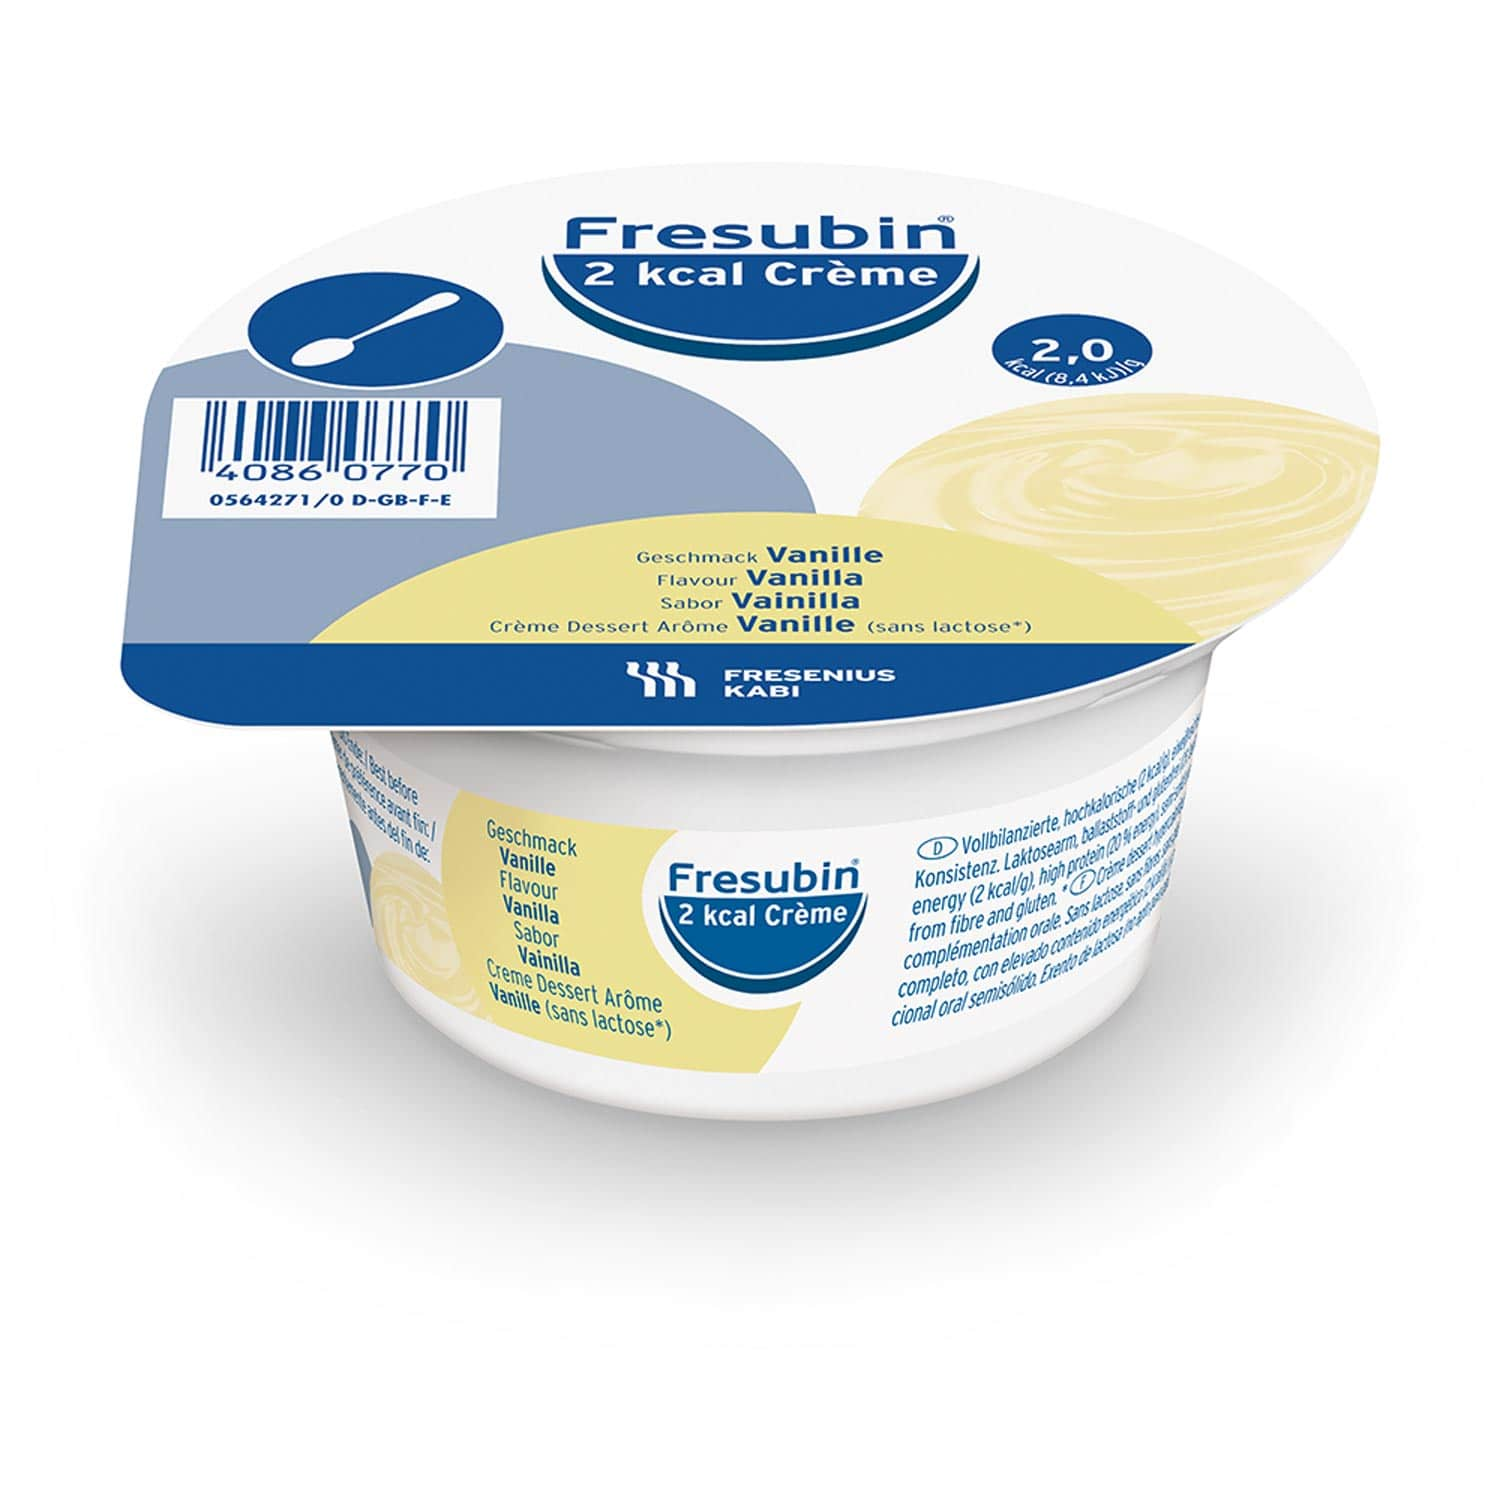 https://static.praxisdienst.com/out/pictures/generated/product/1/1500_1500_100/142153_fresenius_fresubin_2kcal_creme_vanille.jpg